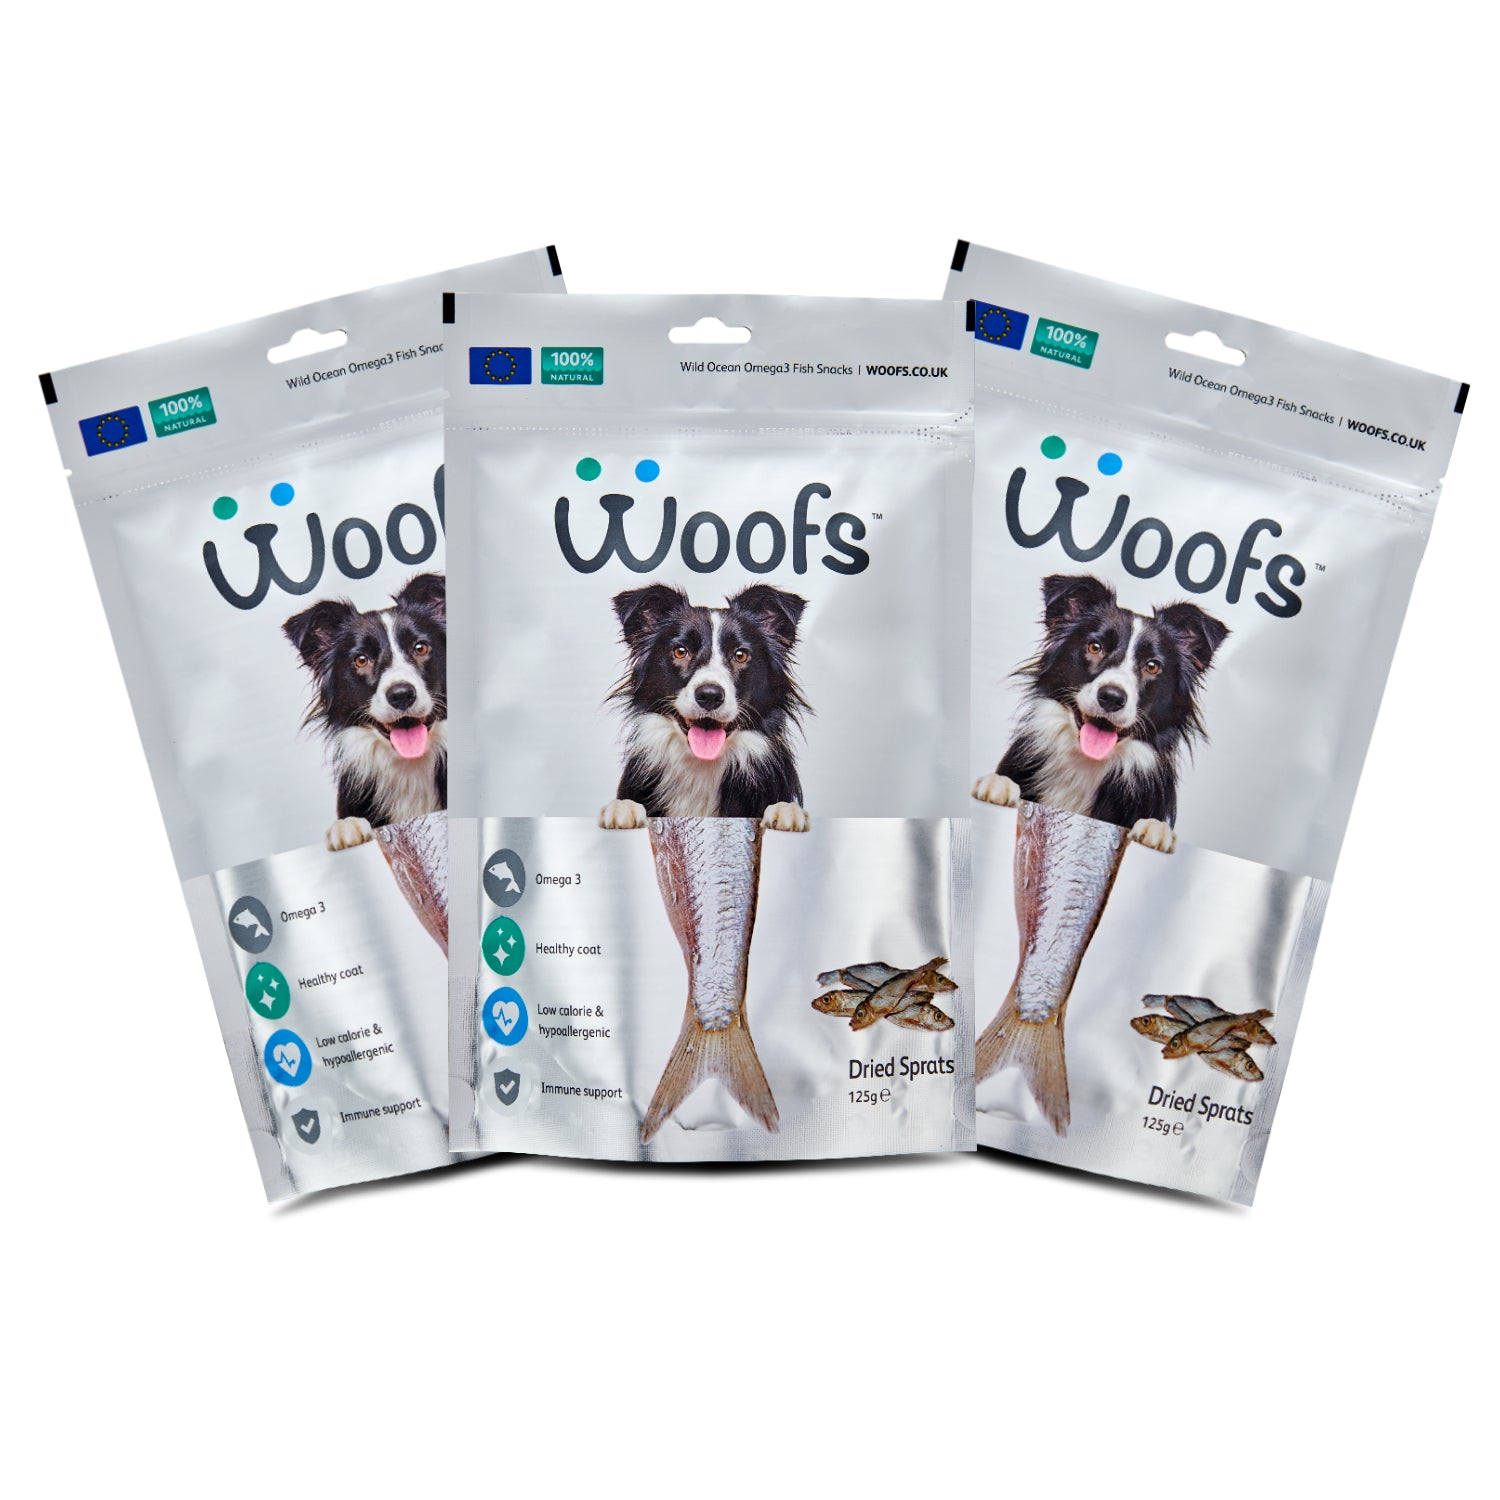 Dried Sprats - WOOFS